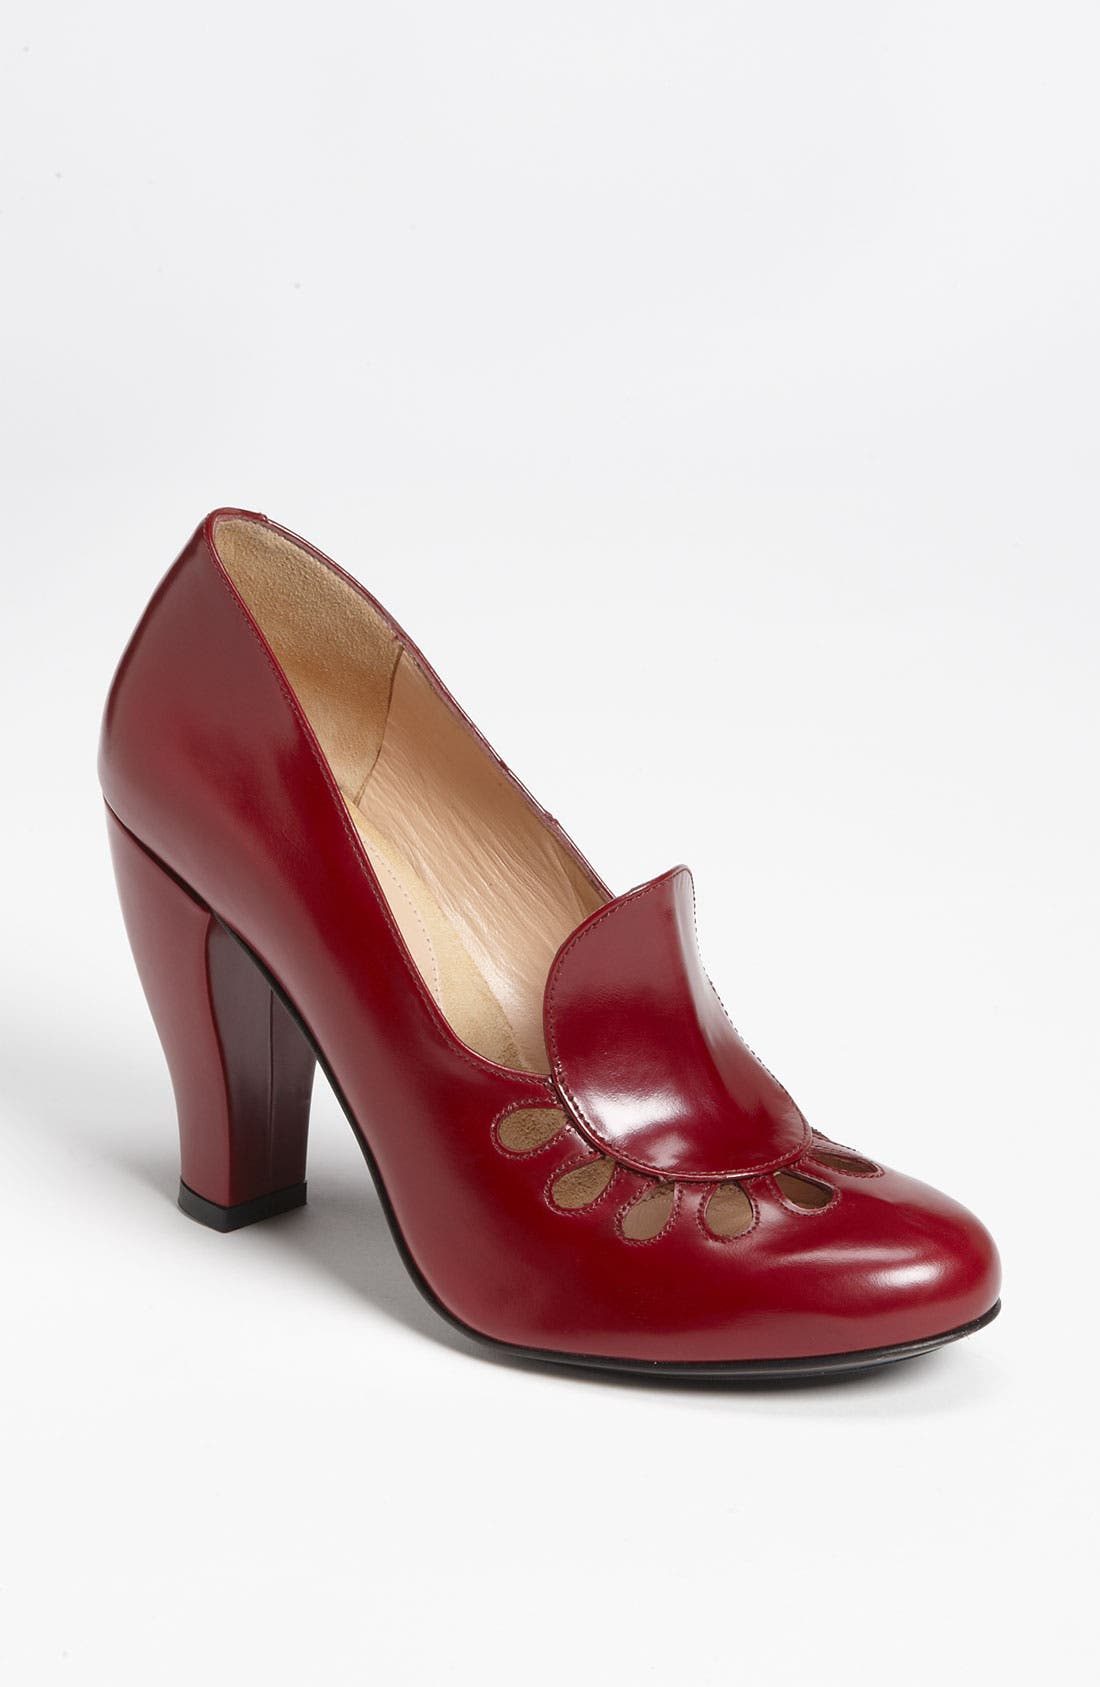 Alternate Image 1 Selected - Robert Clergerie 'Messine' Pump